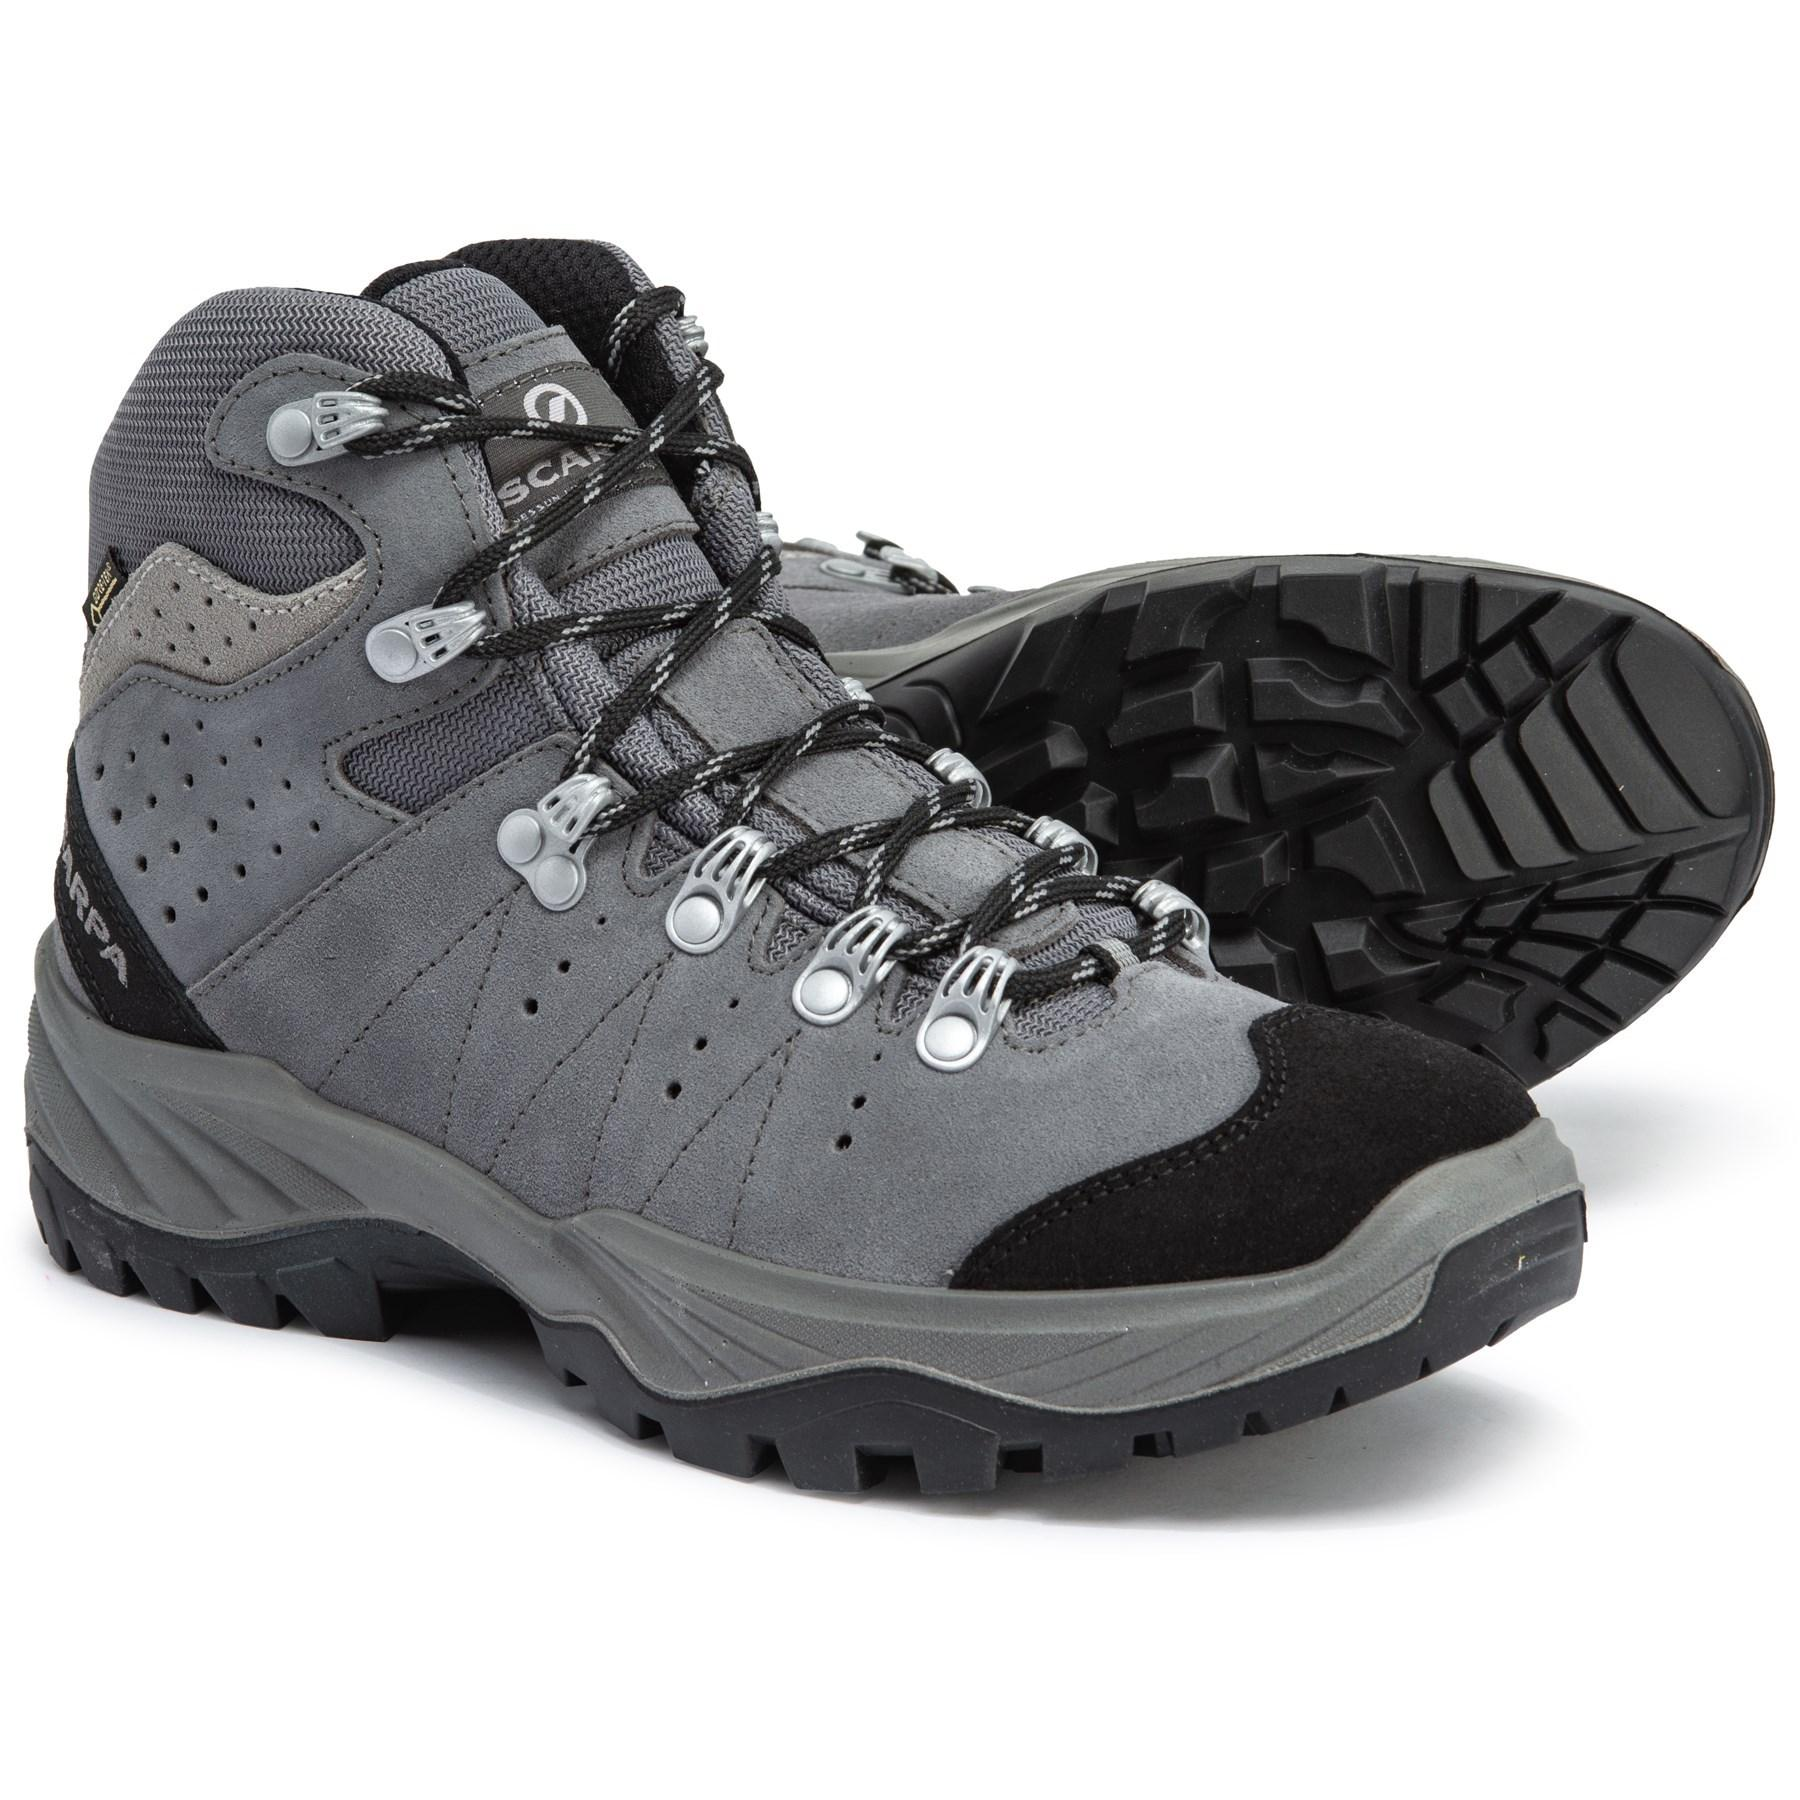 9d4fae084ba SCARPA Mistral Gore-tex® Hiking Boots in Gray - Lyst